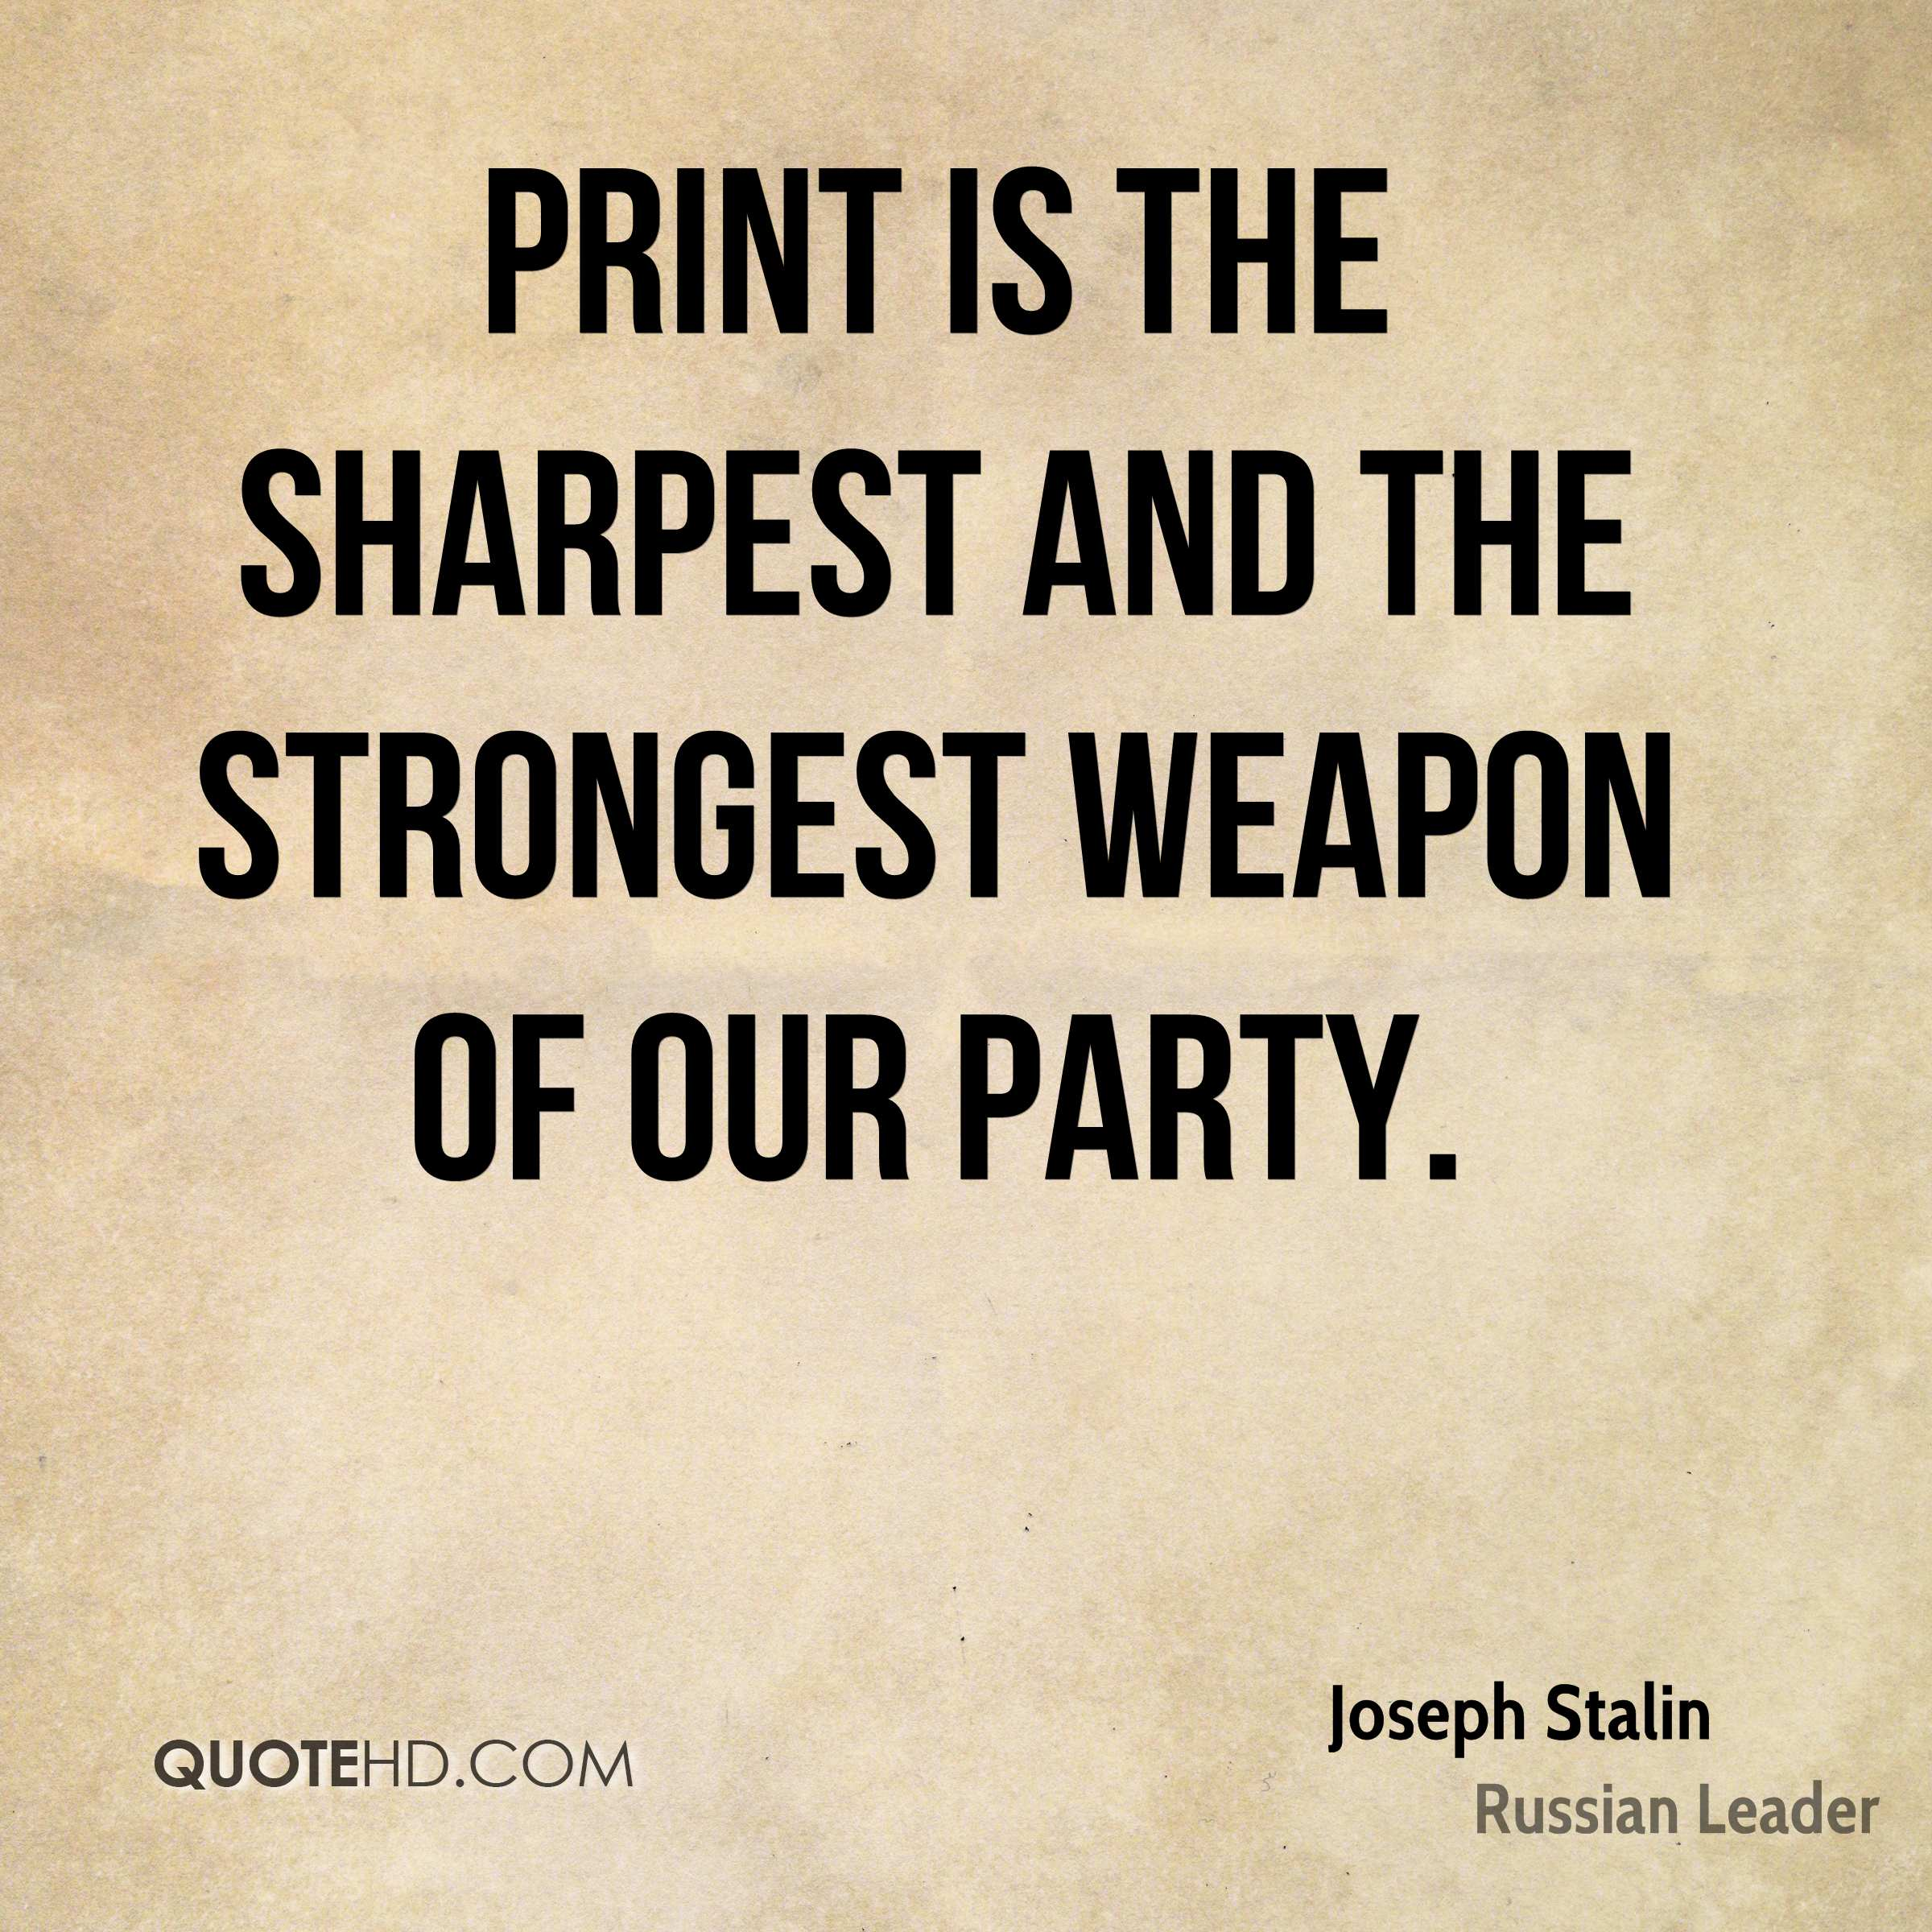 Print is the sharpest and the strongest weapon of our party.